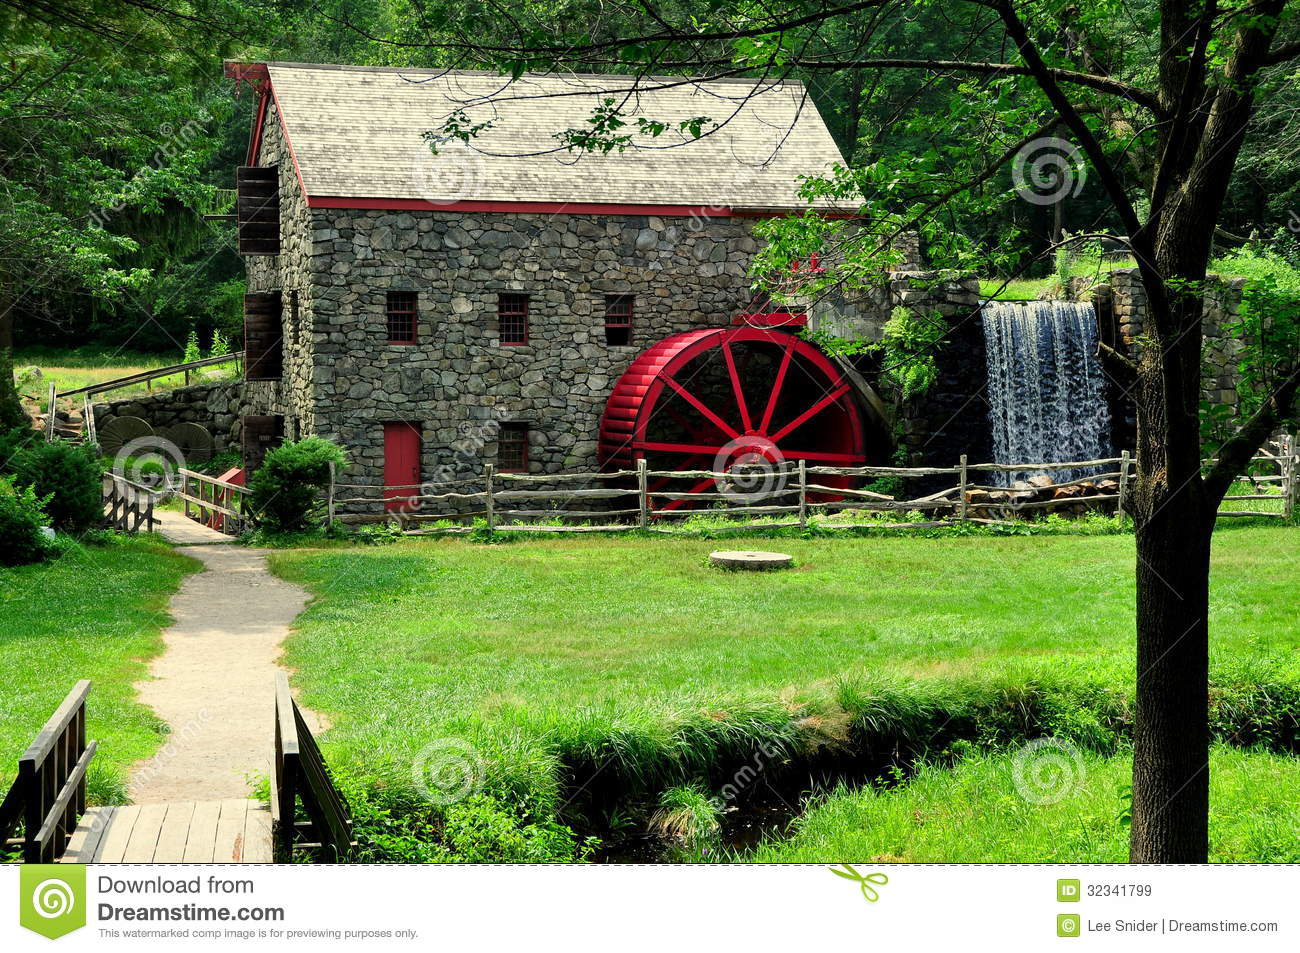 Marble Water Wheels : Sudbury ma old stone grist mill stock image